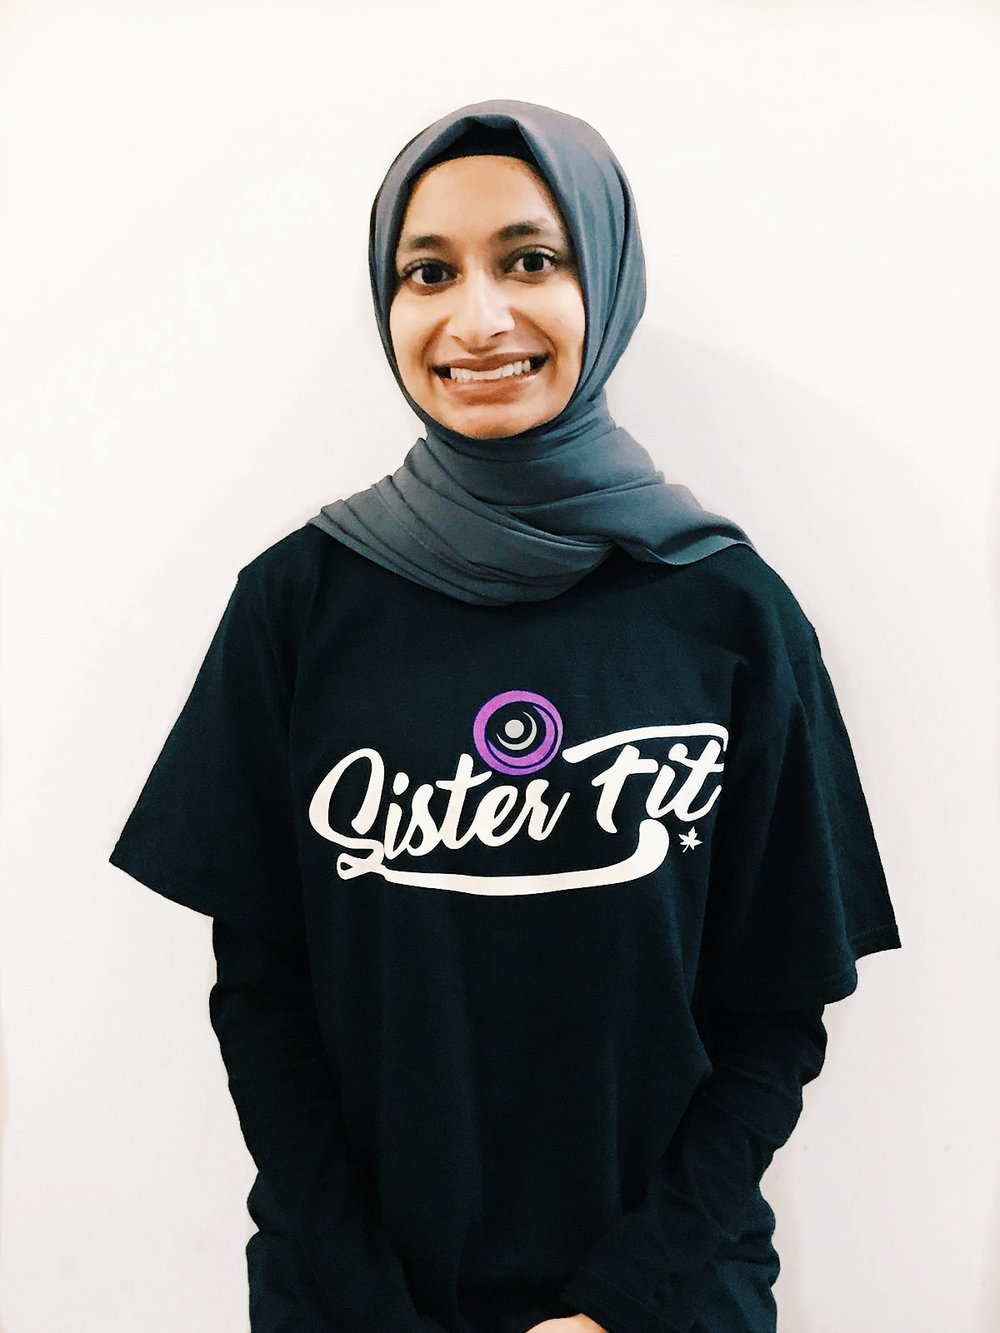 Tasnia Hussain is Sister of the Month! - Our March Sister of the Month has been selected by Coach FLG from our East End location. Tasnia's great attitude, her ability to lift others around her, and her focus in class has earned her this mighty recognition. Read Tasnia's interview below!Name: Tasnia HussainAge: 24